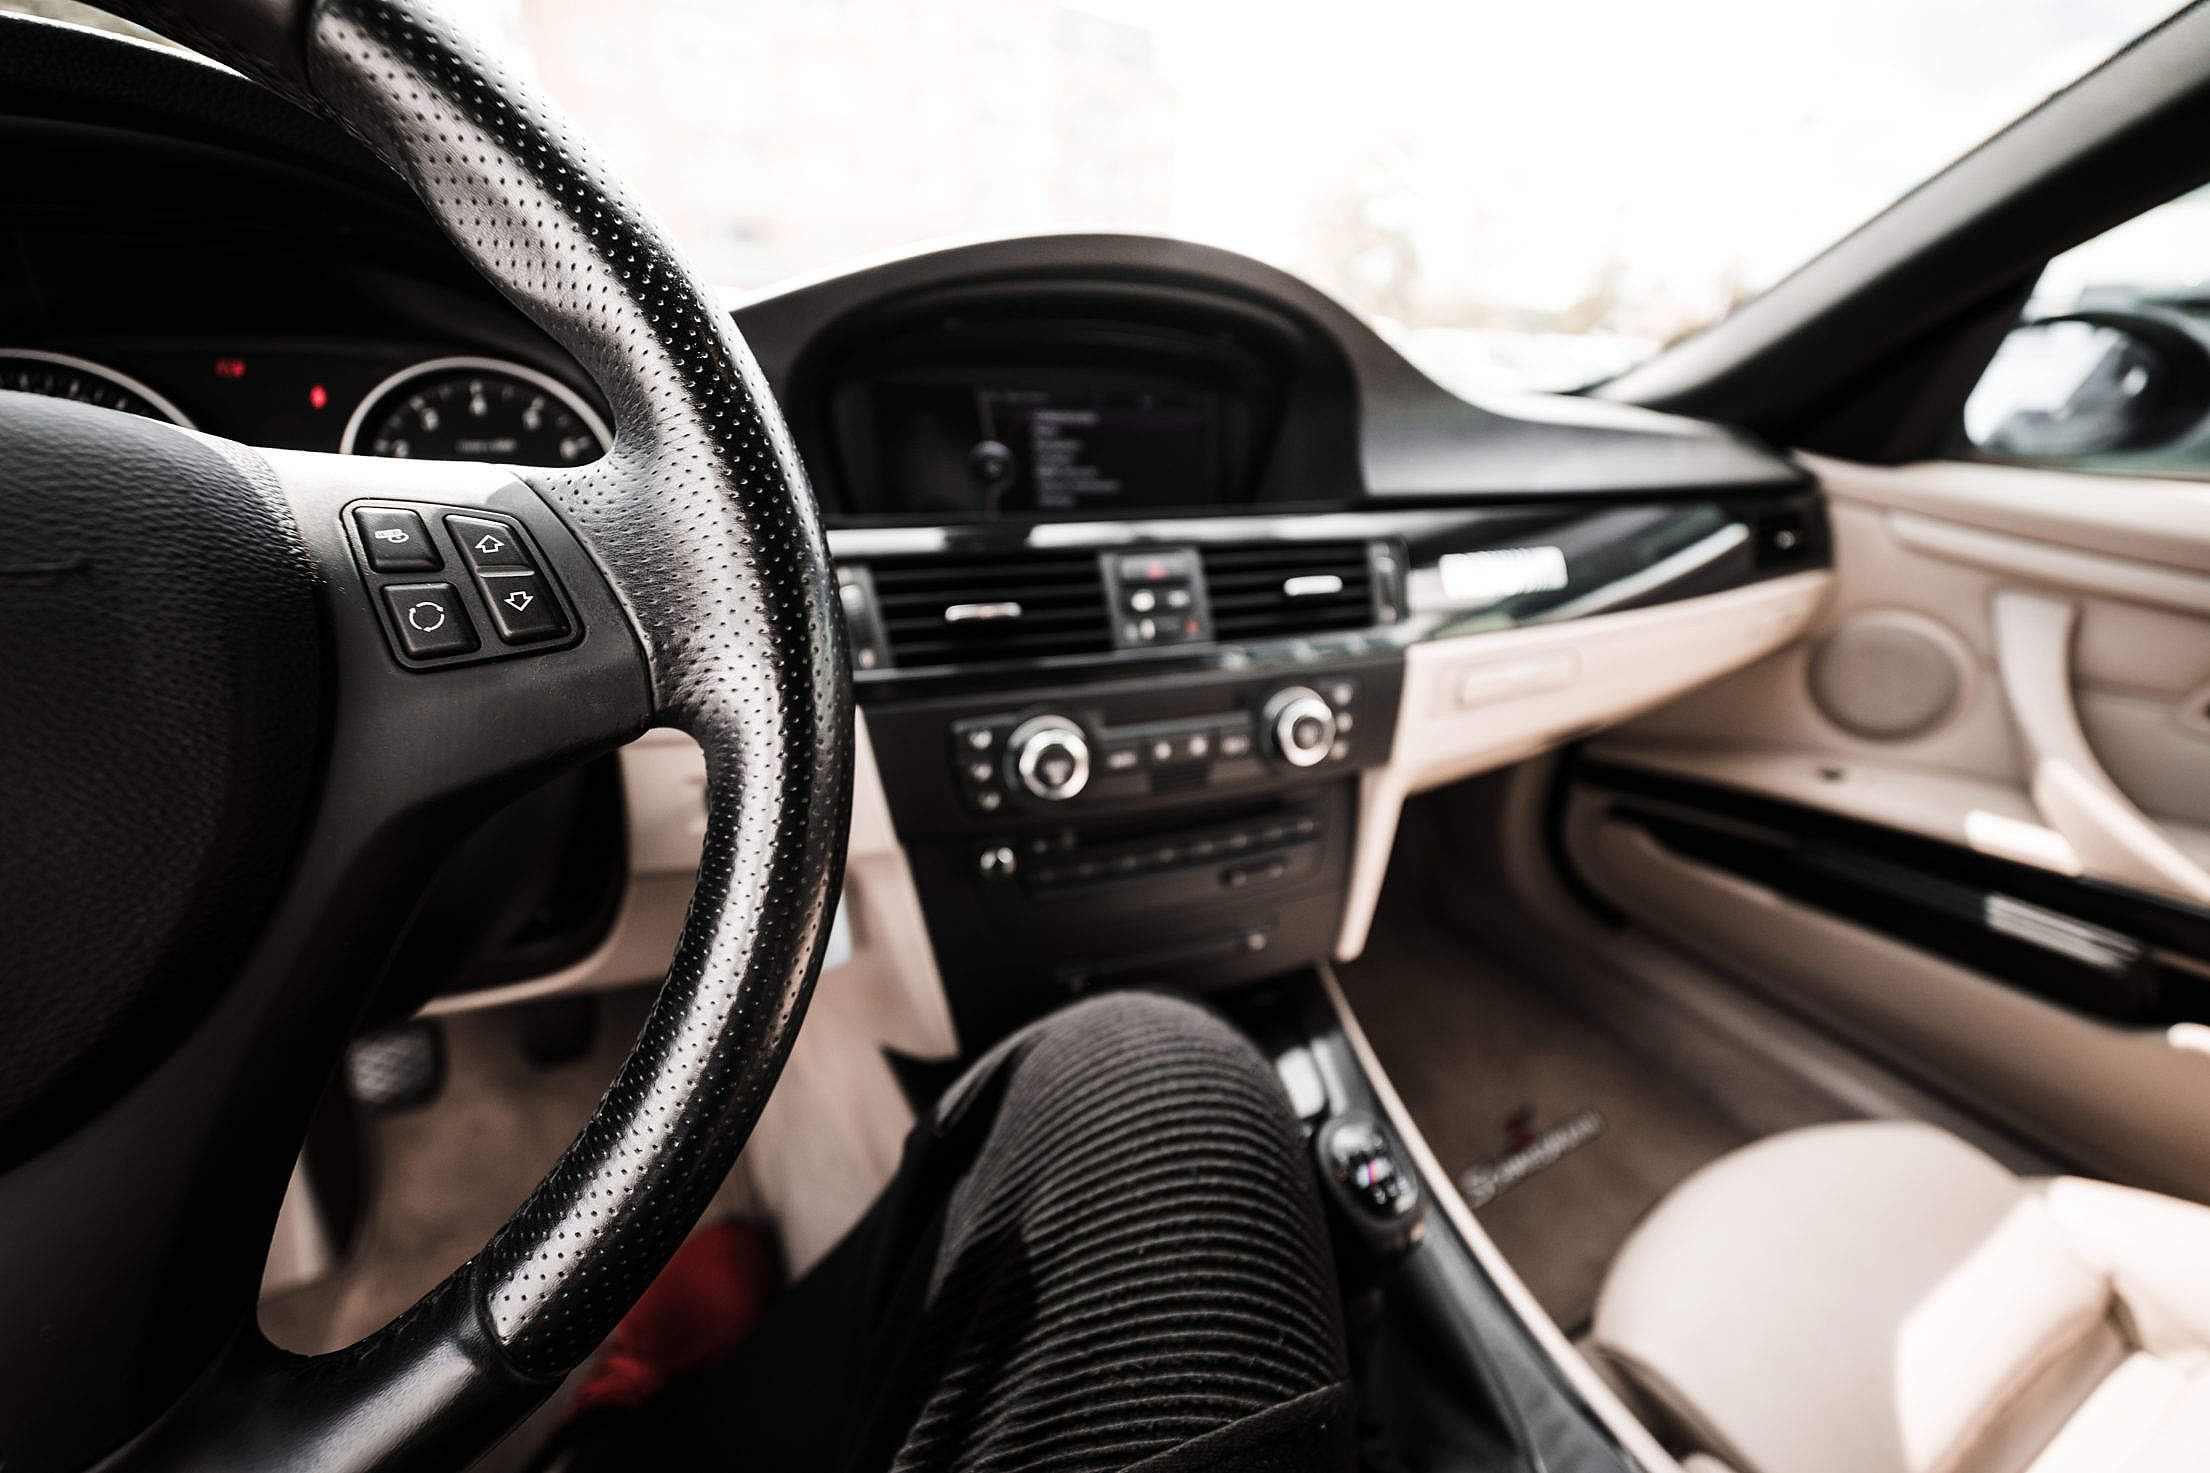 Light Modern Car Interior from Driver's View Free Stock Photo